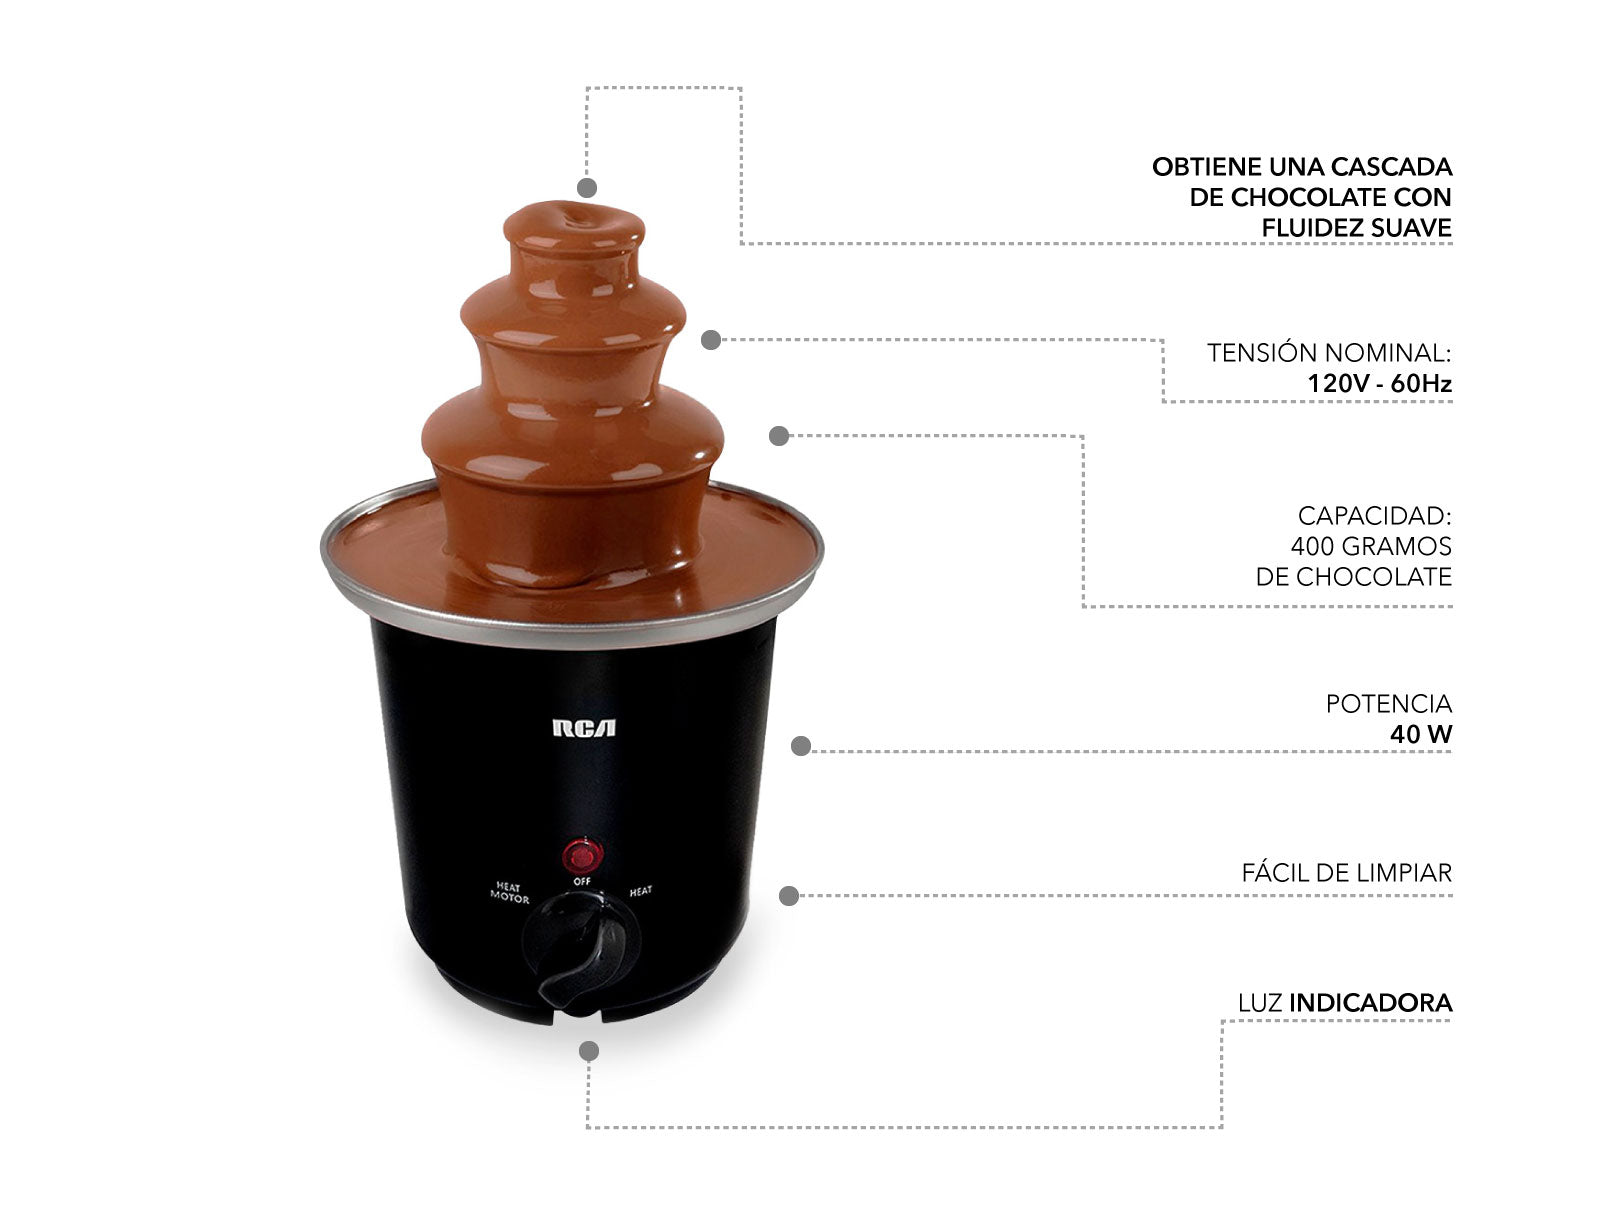 Mini Fuente de Chocolate. / Mini Chocolate Fountain.